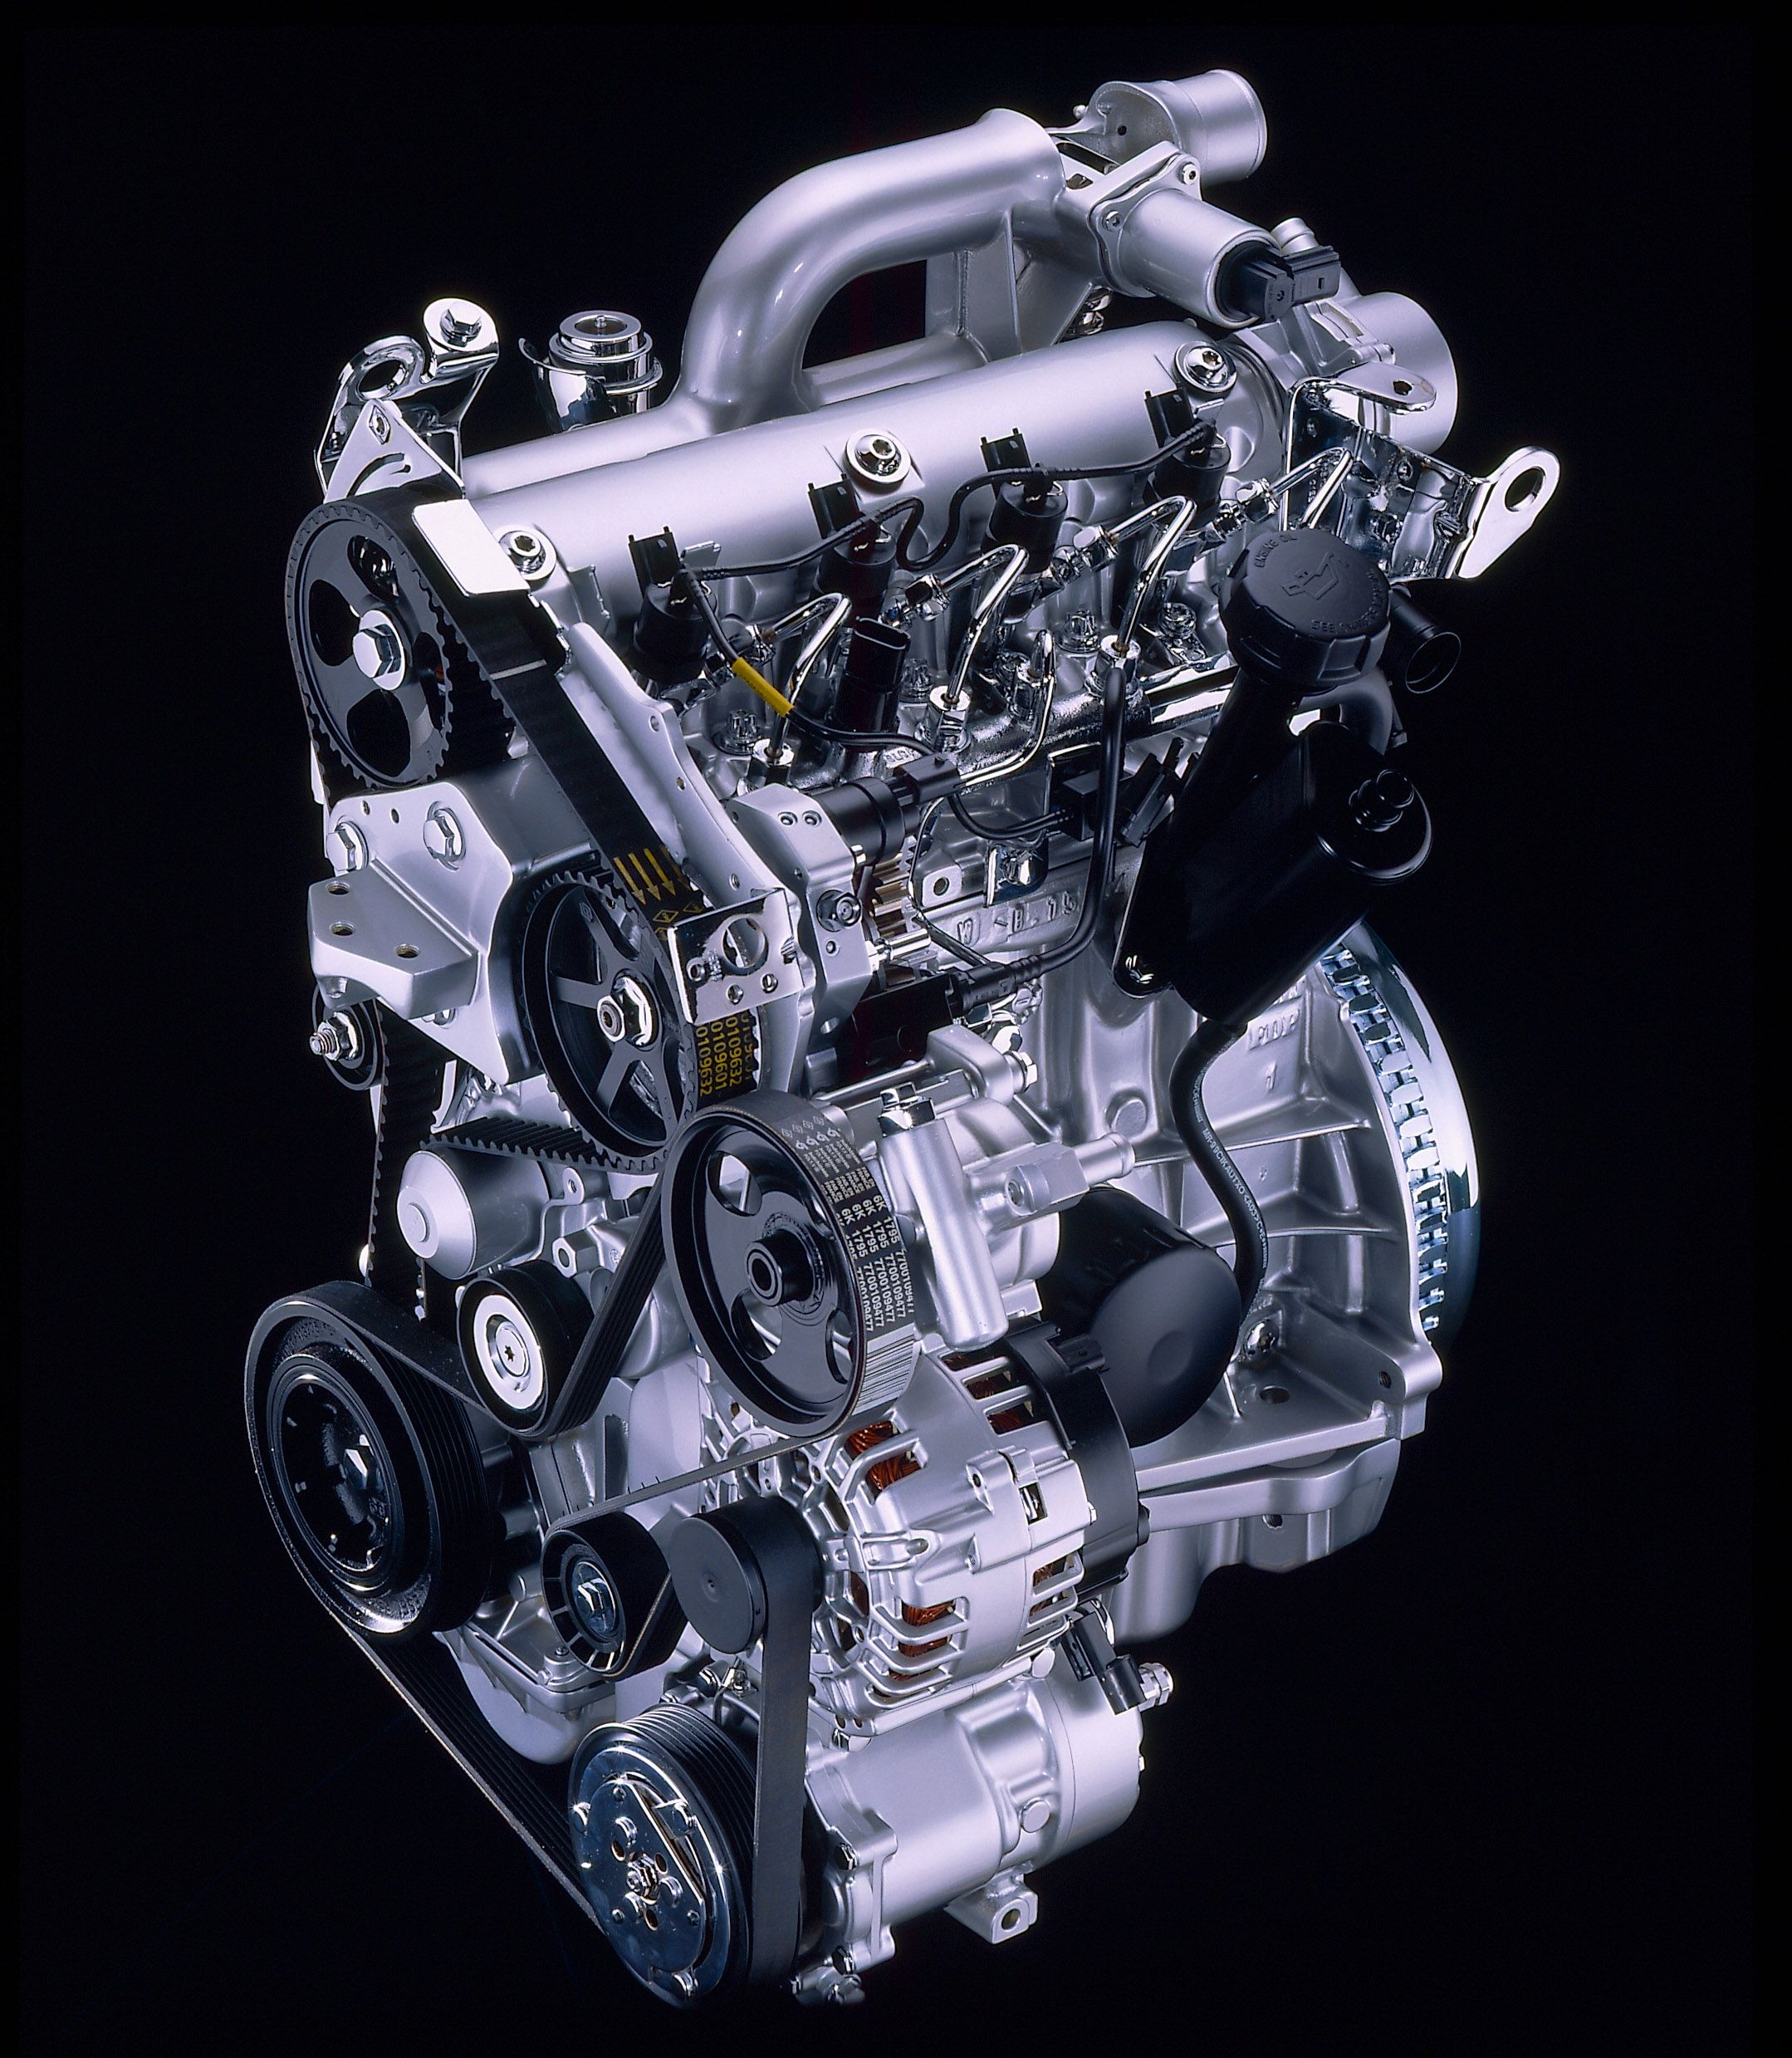 Volvo V40 engine #1